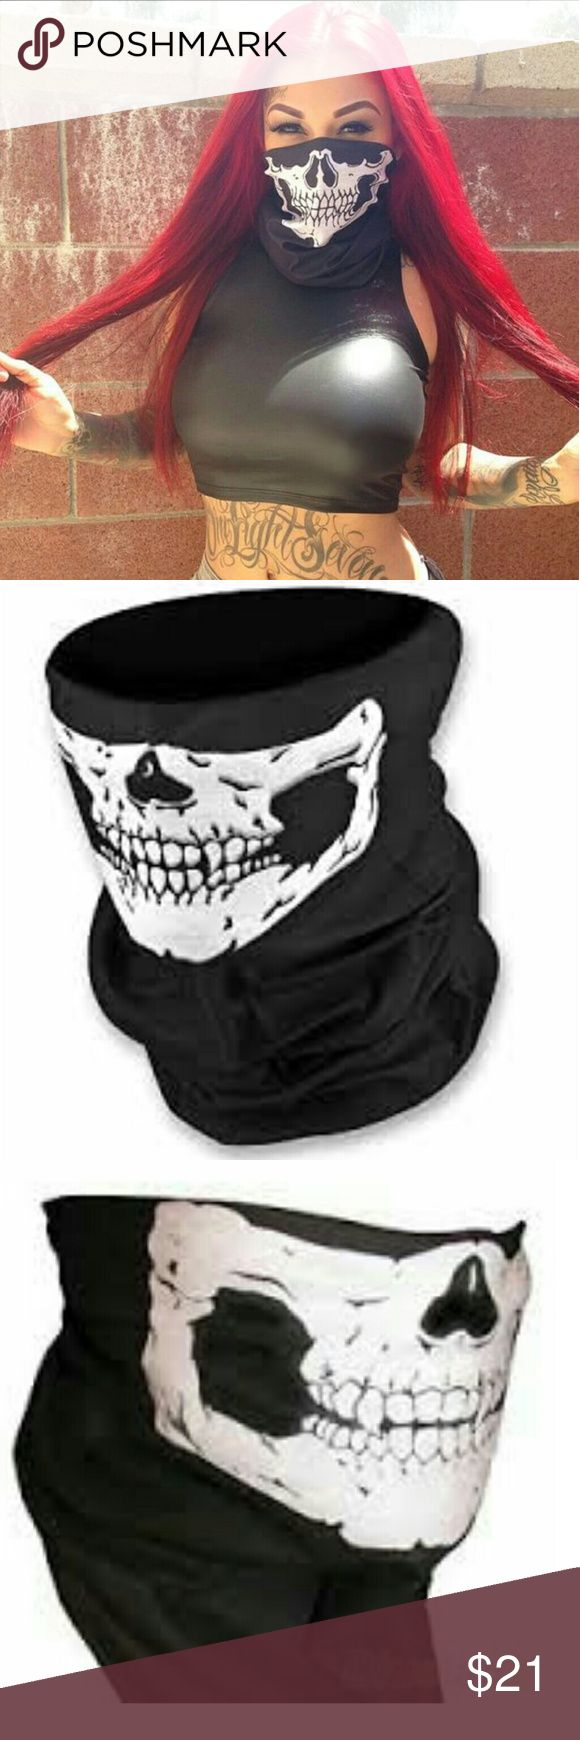 Bad girl sexy pull up face mask bad boyBandana BLACK Skeleton Face Mask, Bandana, Face Protection, Multifunctional, Seamless, Tube Mask, Thin, Lightweight, Perfect For Skiing, Snowboarding, Motorcycling, Paintball, Yard Work, Costume Dress Up, & More! Accessories Scarves & Wraps